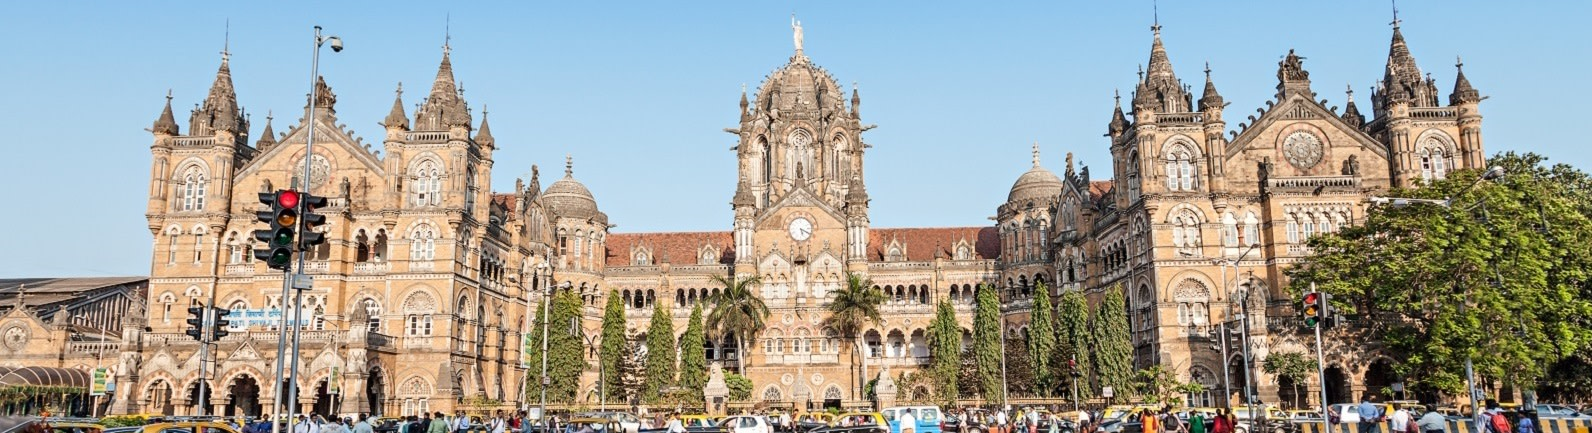 Mumbai train station - India Tours - Enchanting Travels